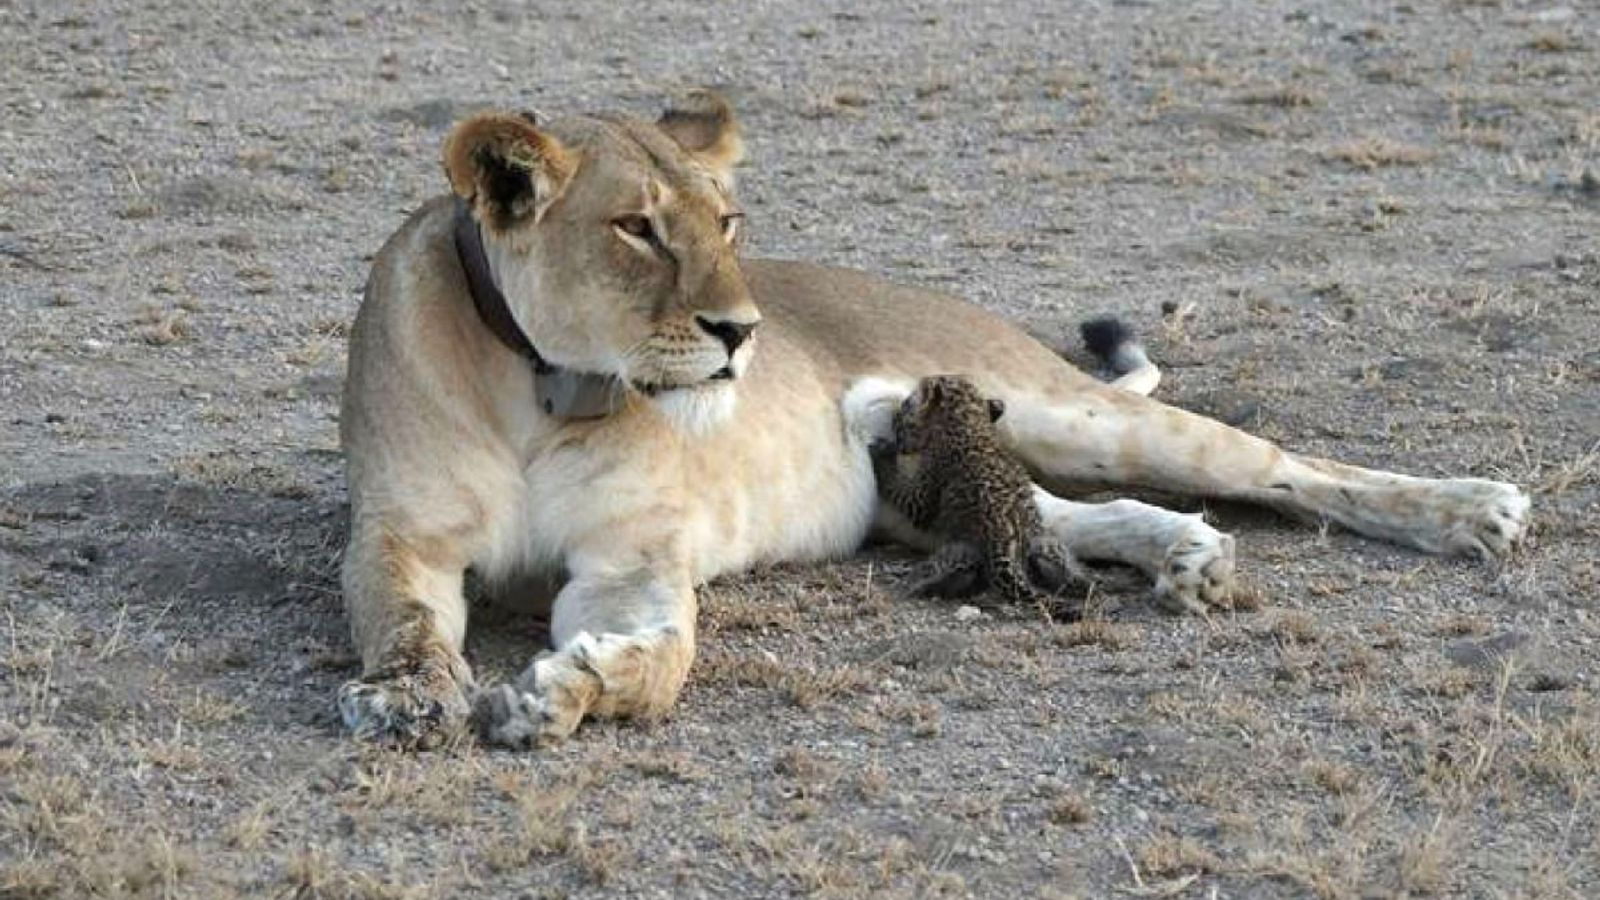 A weeks-old leopard cub suckles from a lion in Tanzania.